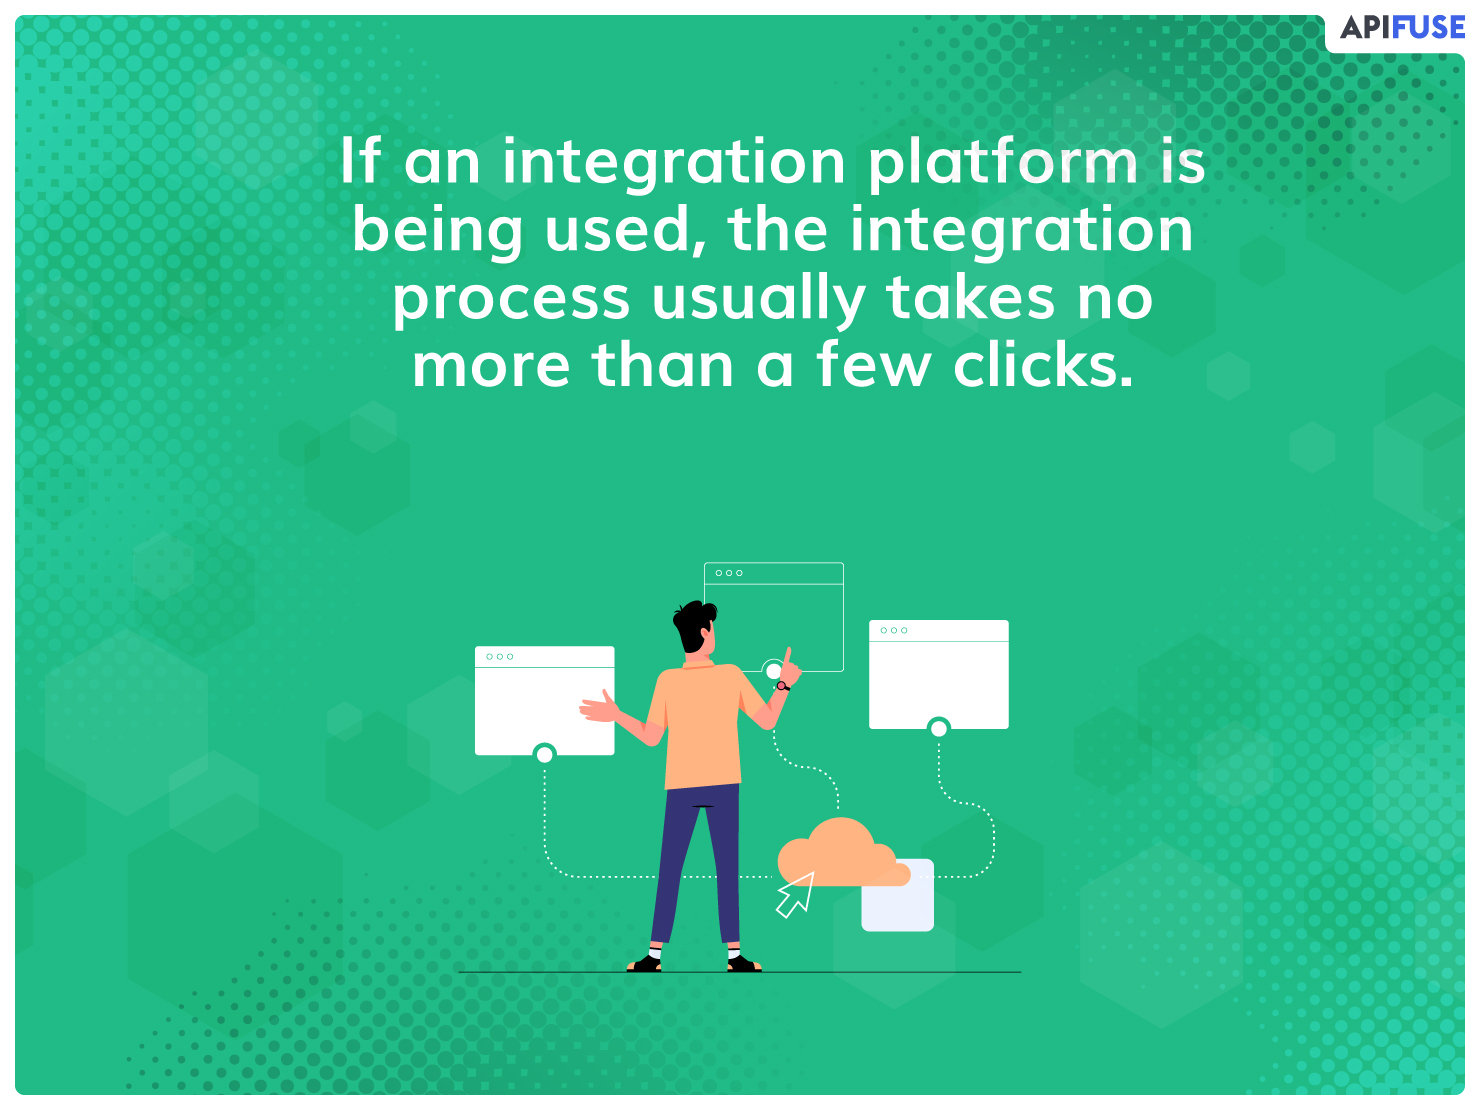 If an integration platform is being used